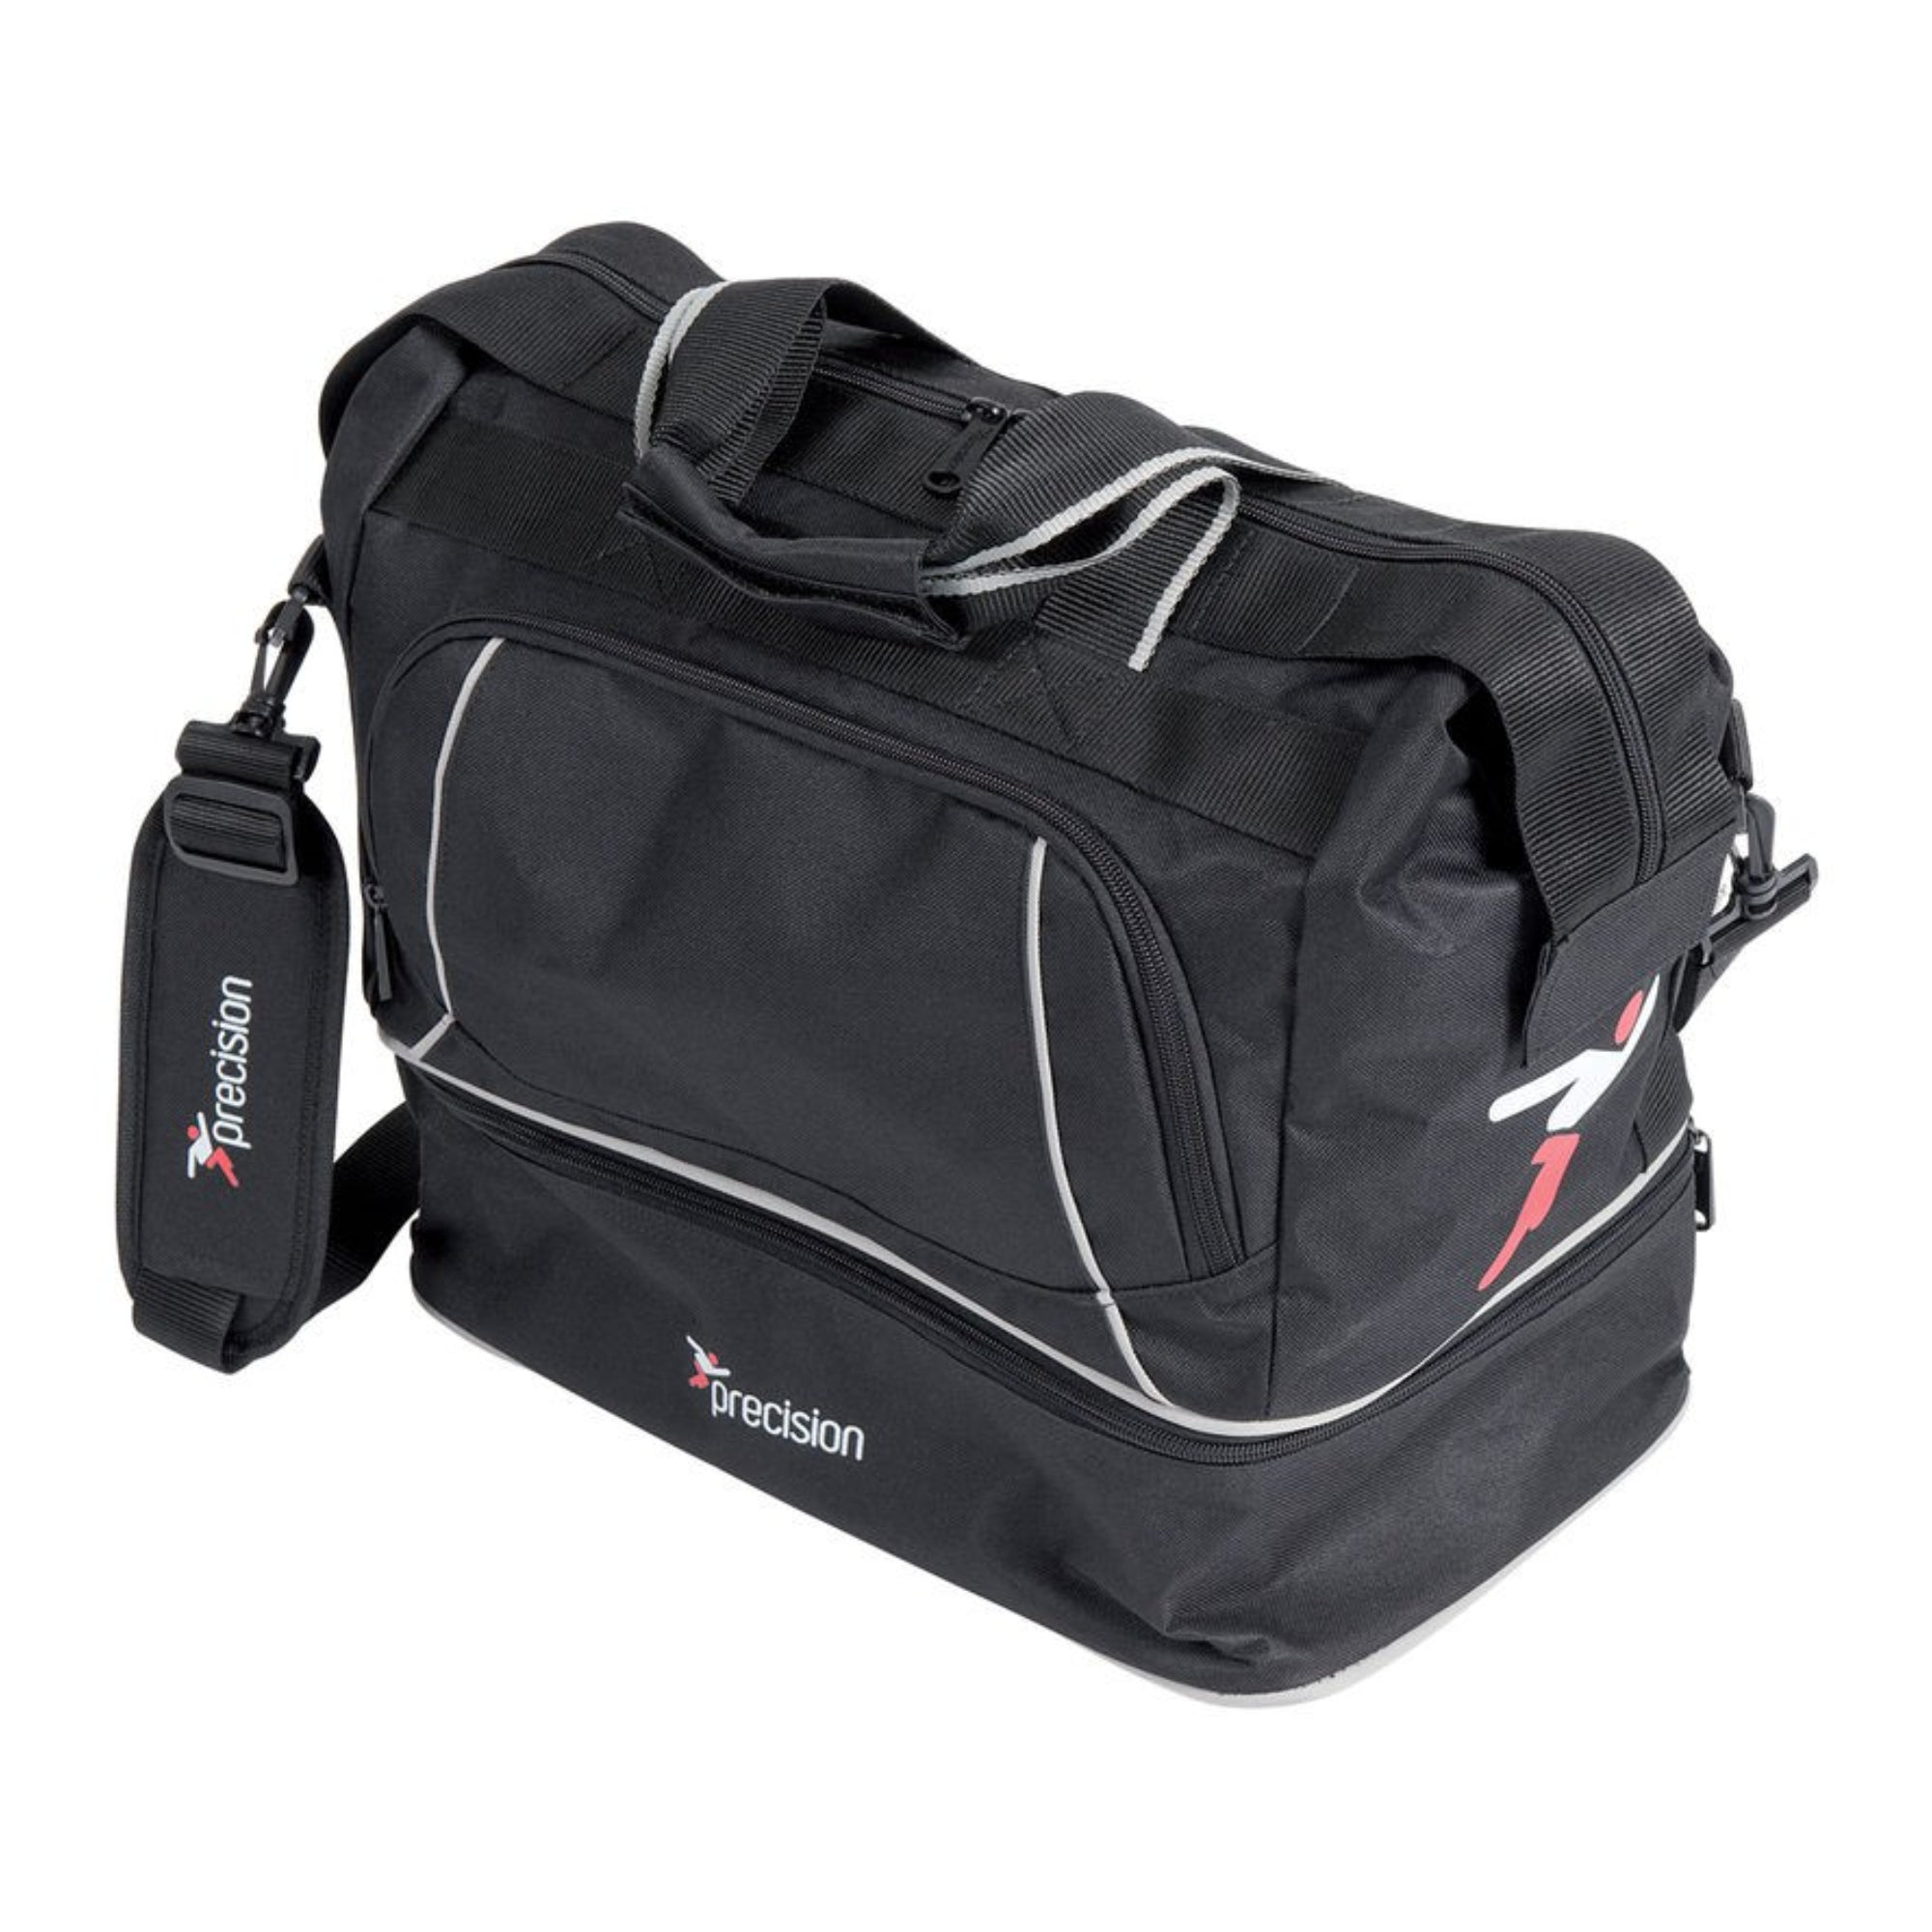 Precision Junior Players Bag - Black